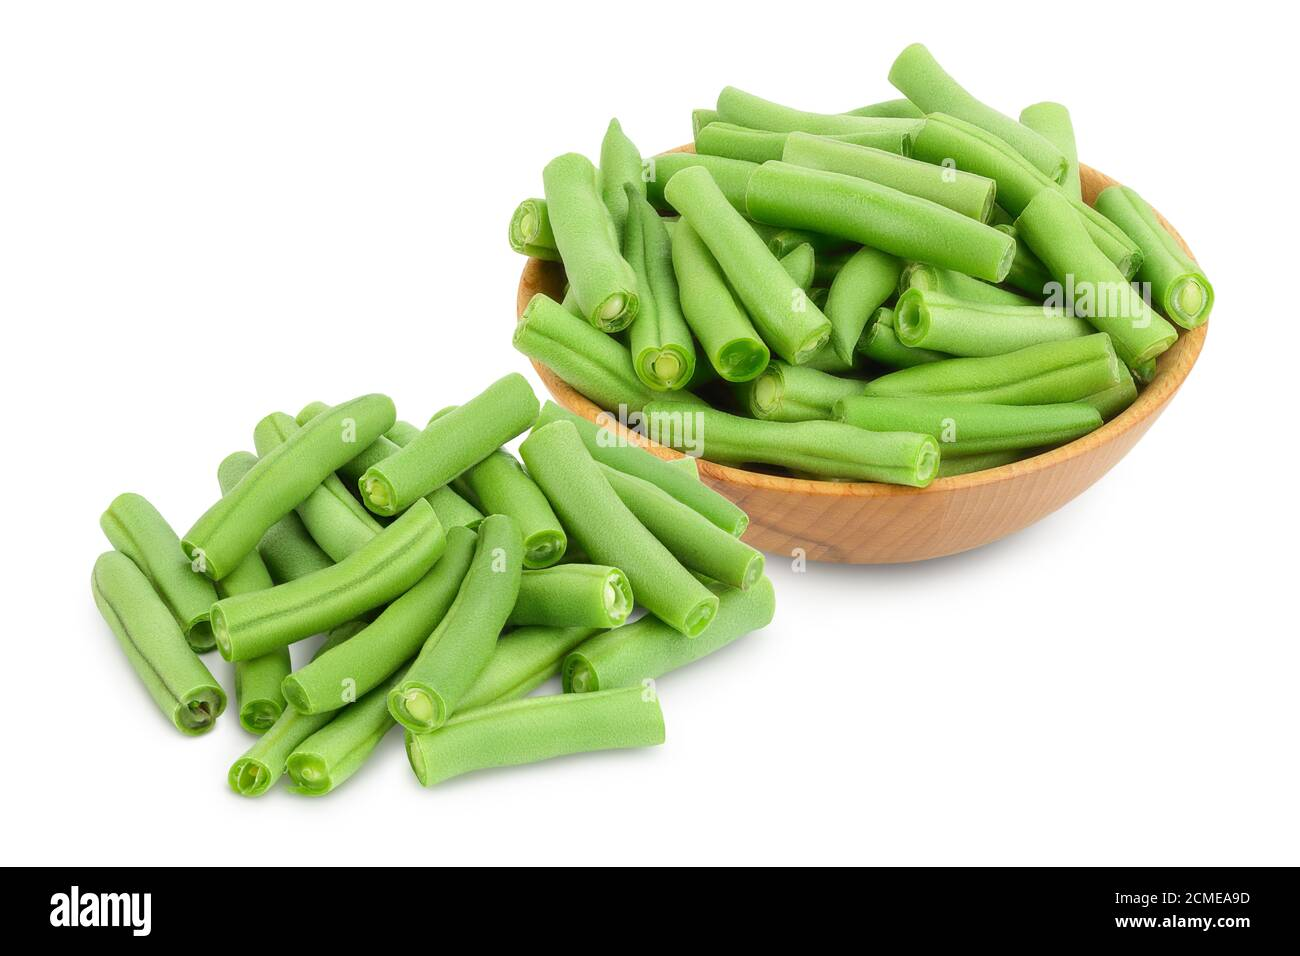 Green beans in wooden bowl isolated on a white background with clipping path and full depth of field, Stock Photo